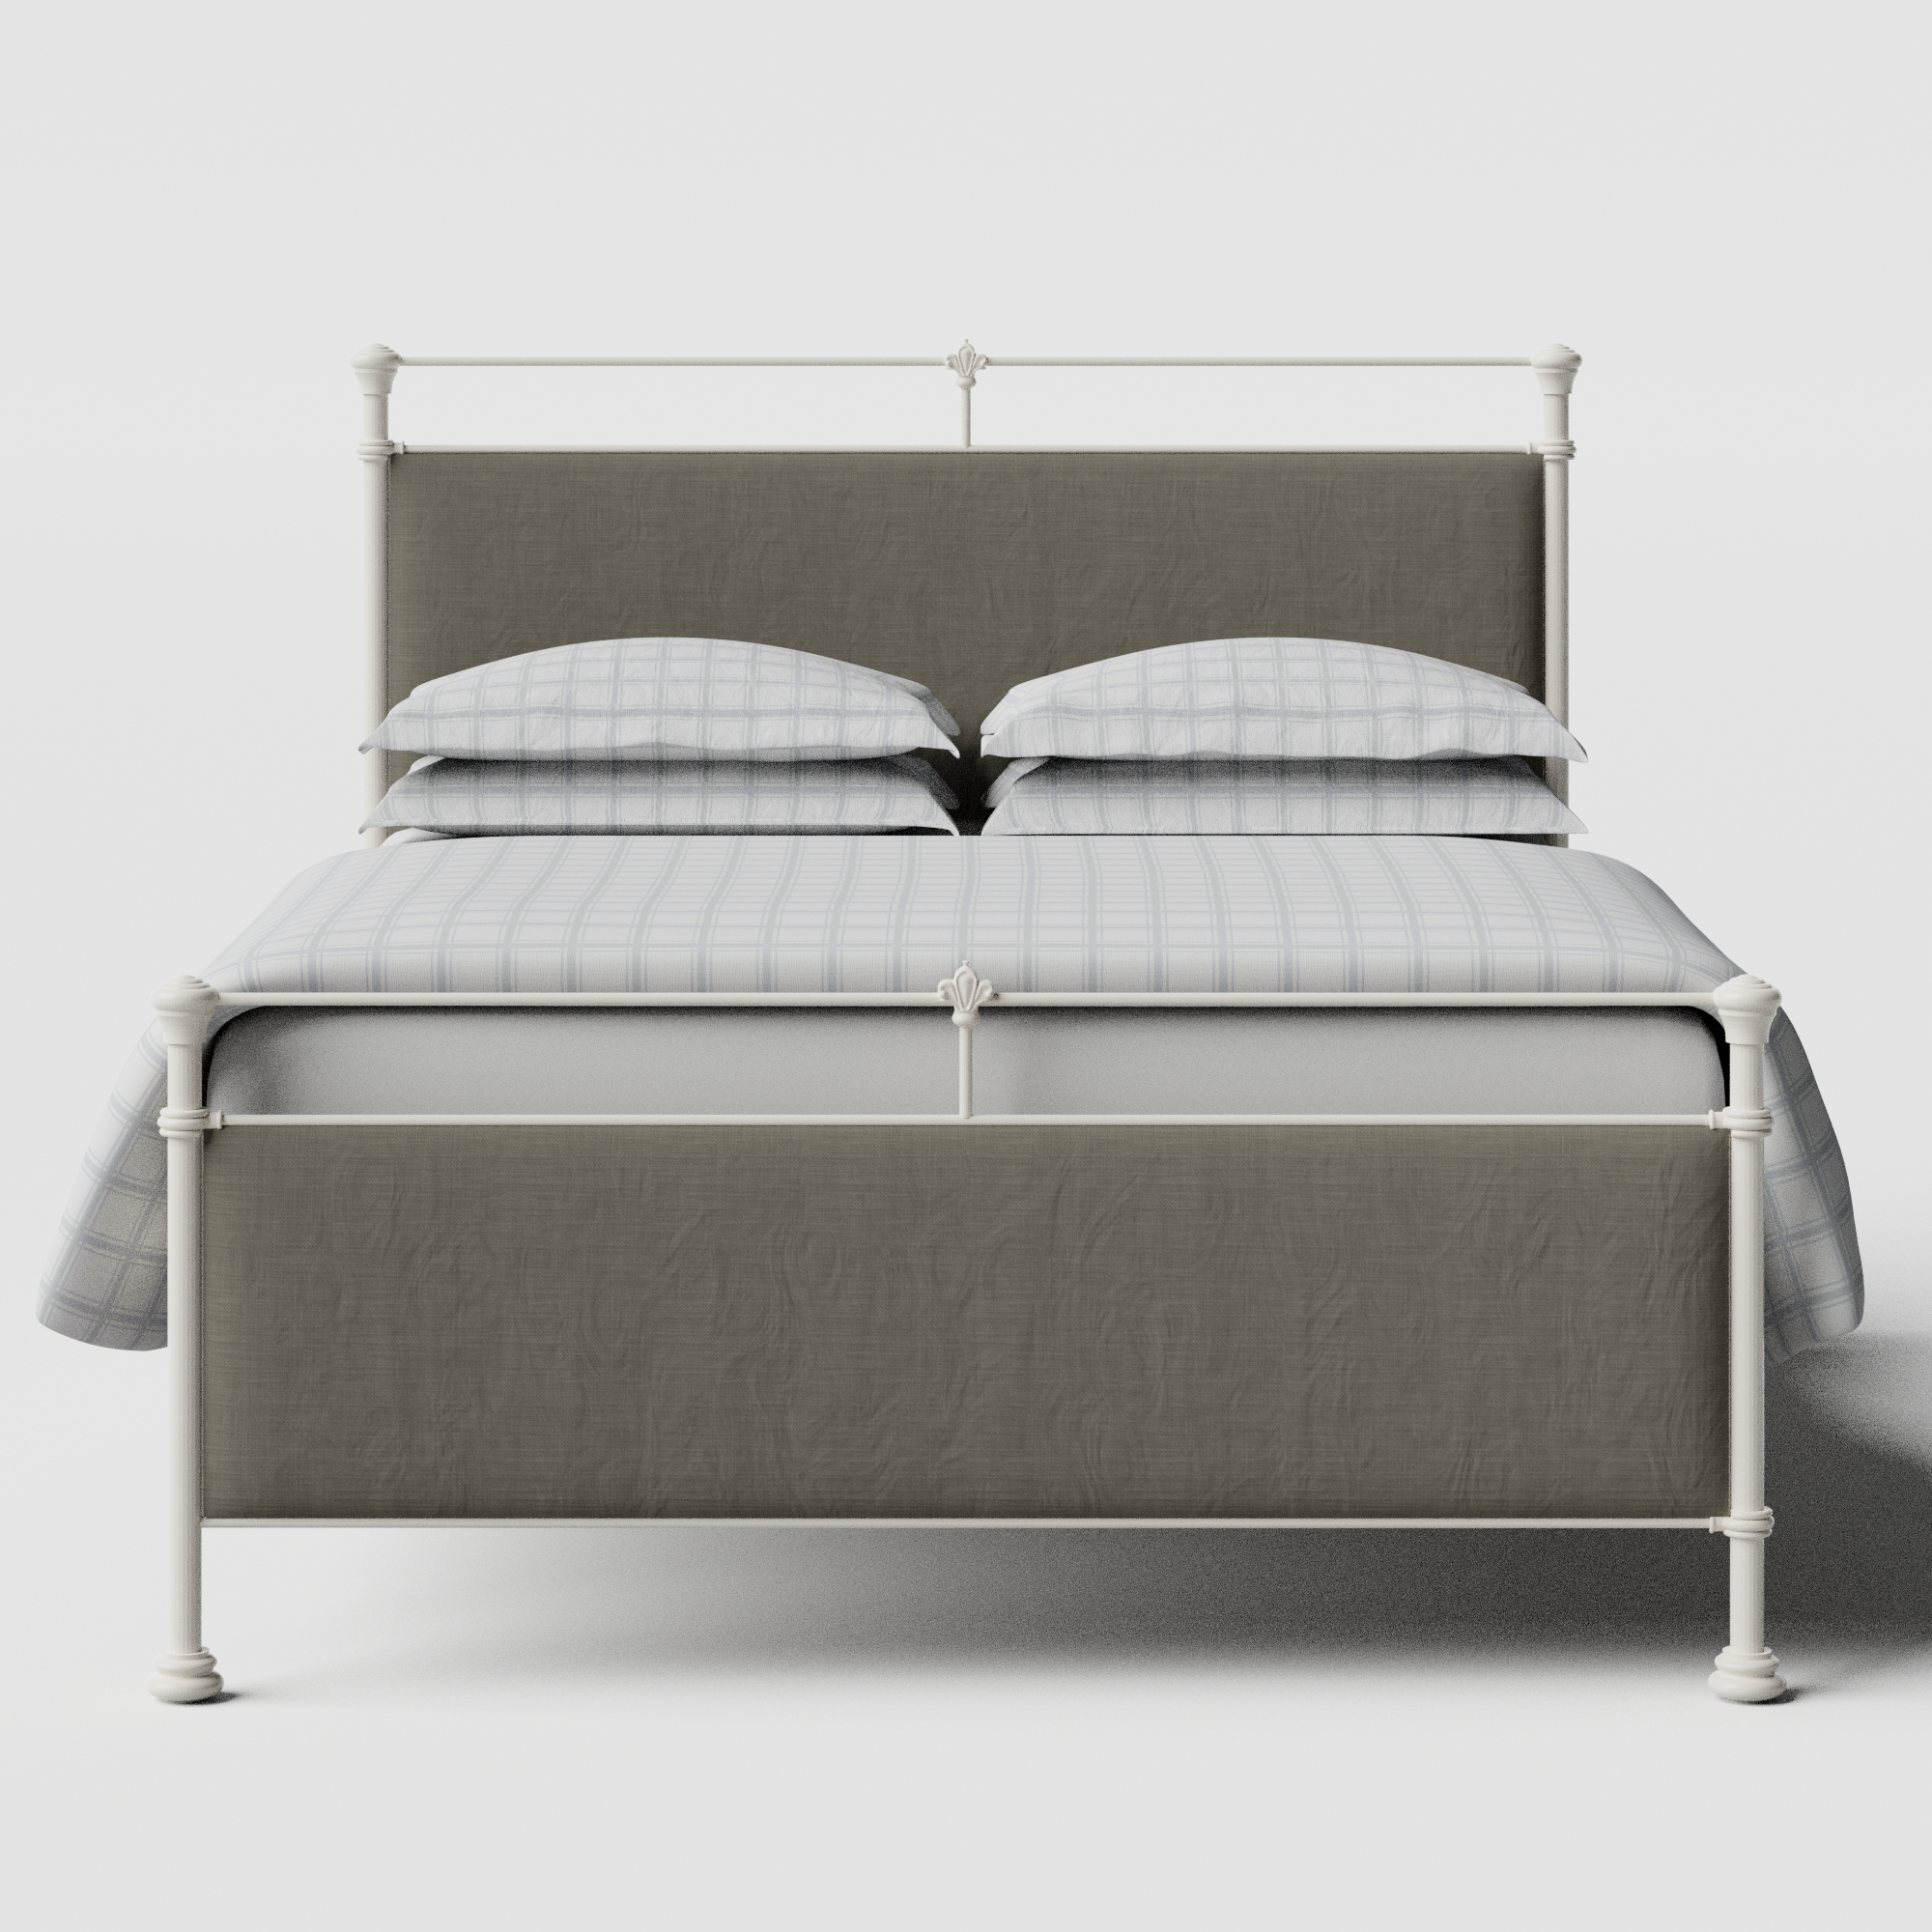 Nancy iron/metal upholstered bed in ivory with grey fabric